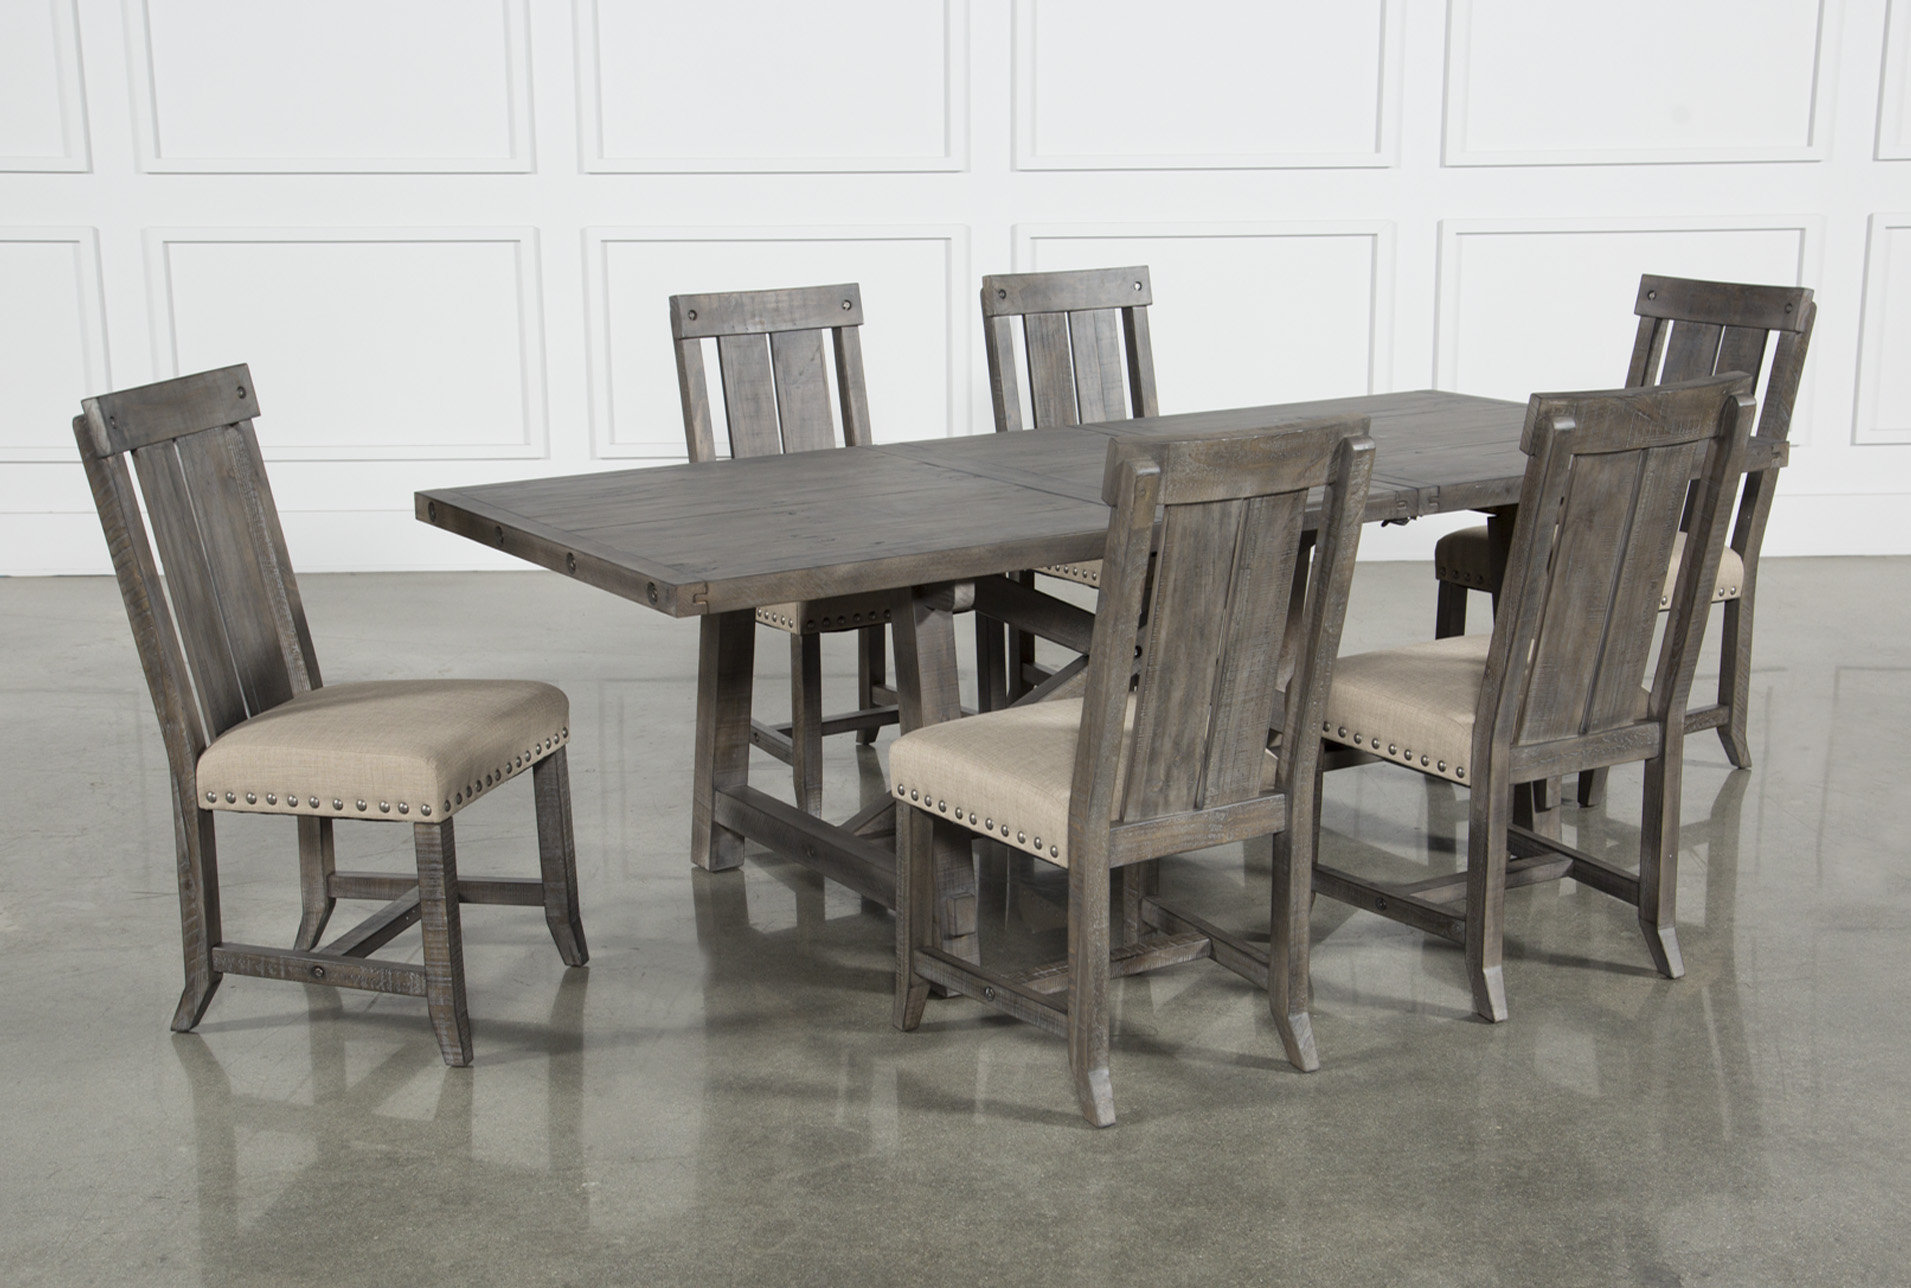 e84a813552 Jaxon Grey 7 Piece Rectangle Extension Dining Set W/Wood Chairs ...